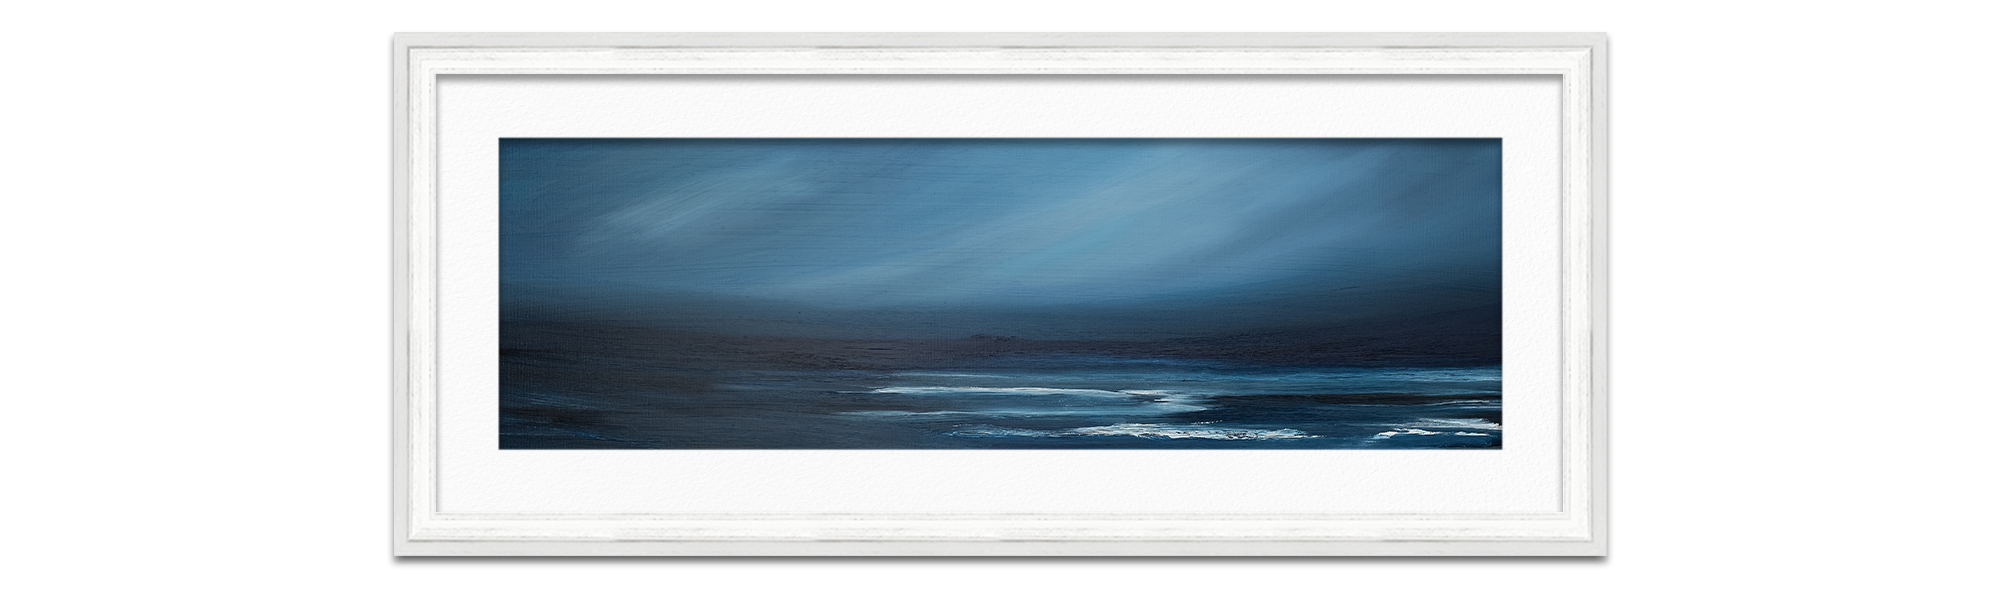 framed deep blue seascape painting by Karlyn Marshall Artist Helensburgh Art Hub photographed by Life in Focus Portraits product photography for independent crafters Helensburgh Loch Lomond